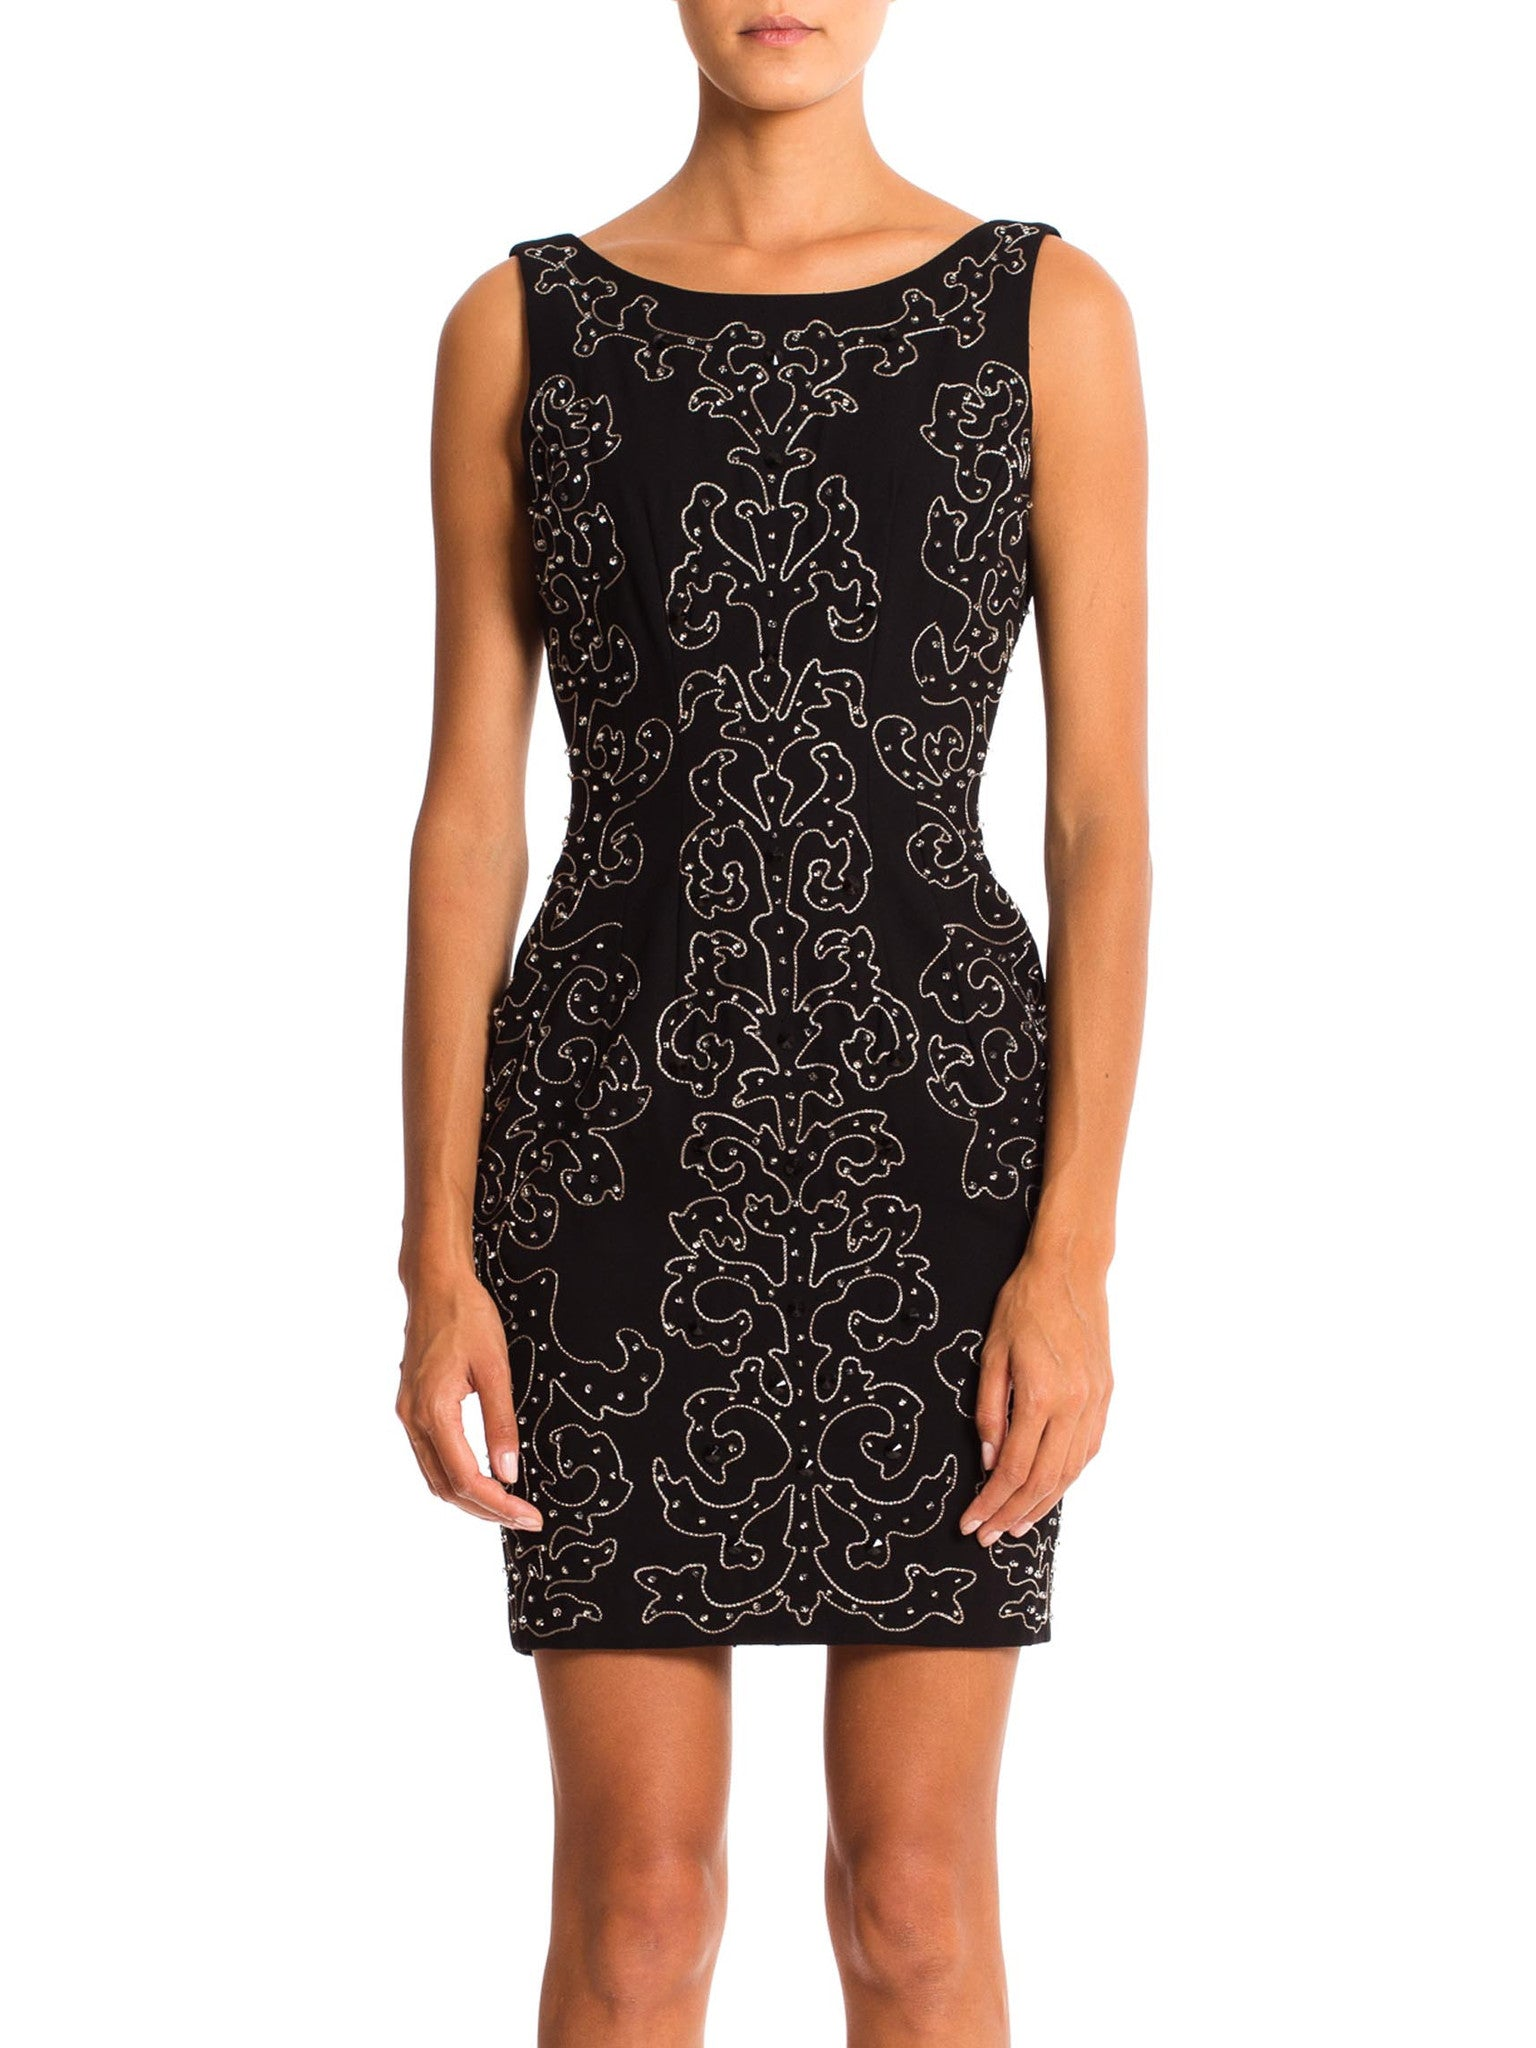 58ba3b999c2 1990s Beaded Cocktail Dress from Saks Fifth Ave – MORPHEW